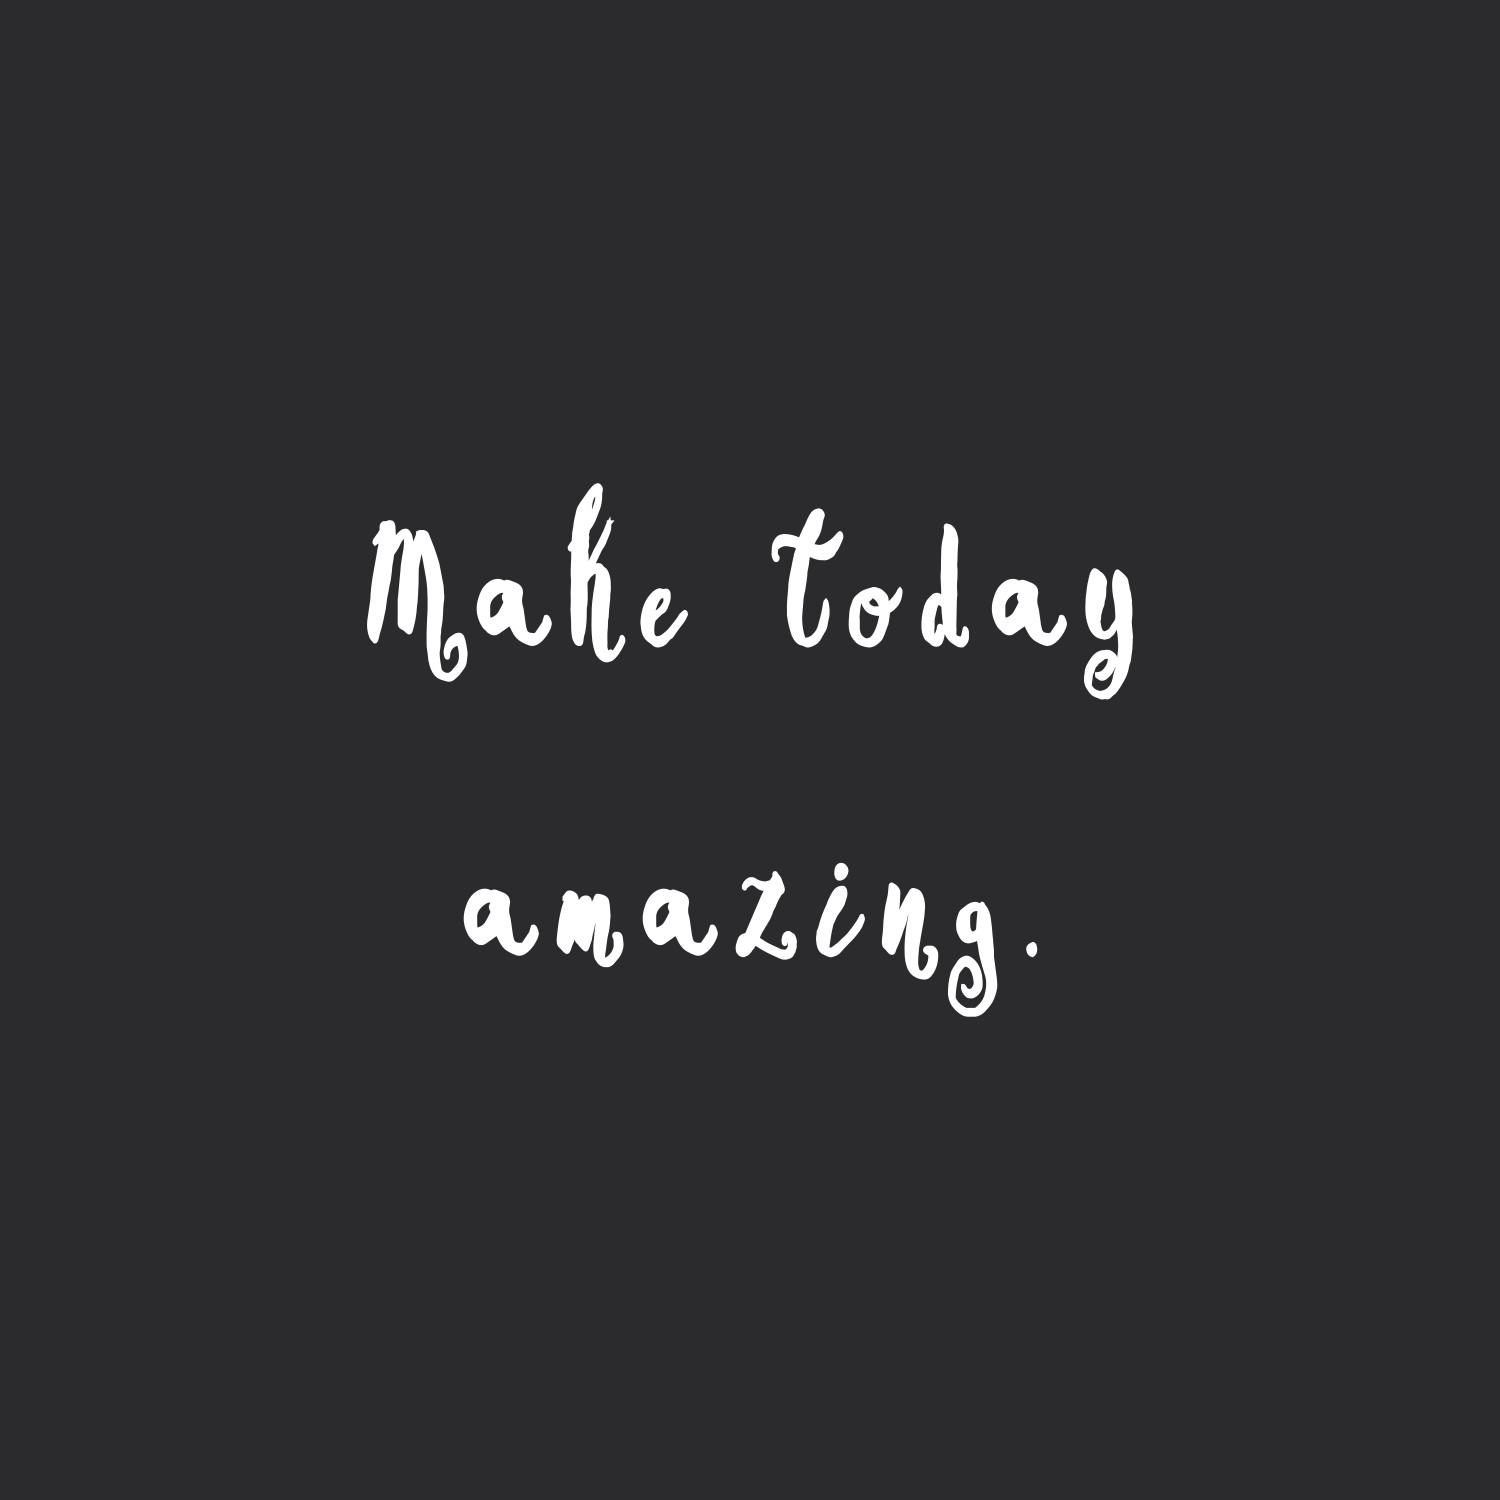 Make today amazing! Browse our collection of motivational training and weight loss quotes and get instant health and fitness inspiration. Transform positive thoughts into positive actions and get fit, healthy and happy! https://www.spotebi.com/workout-motivation/make-today-amazing/